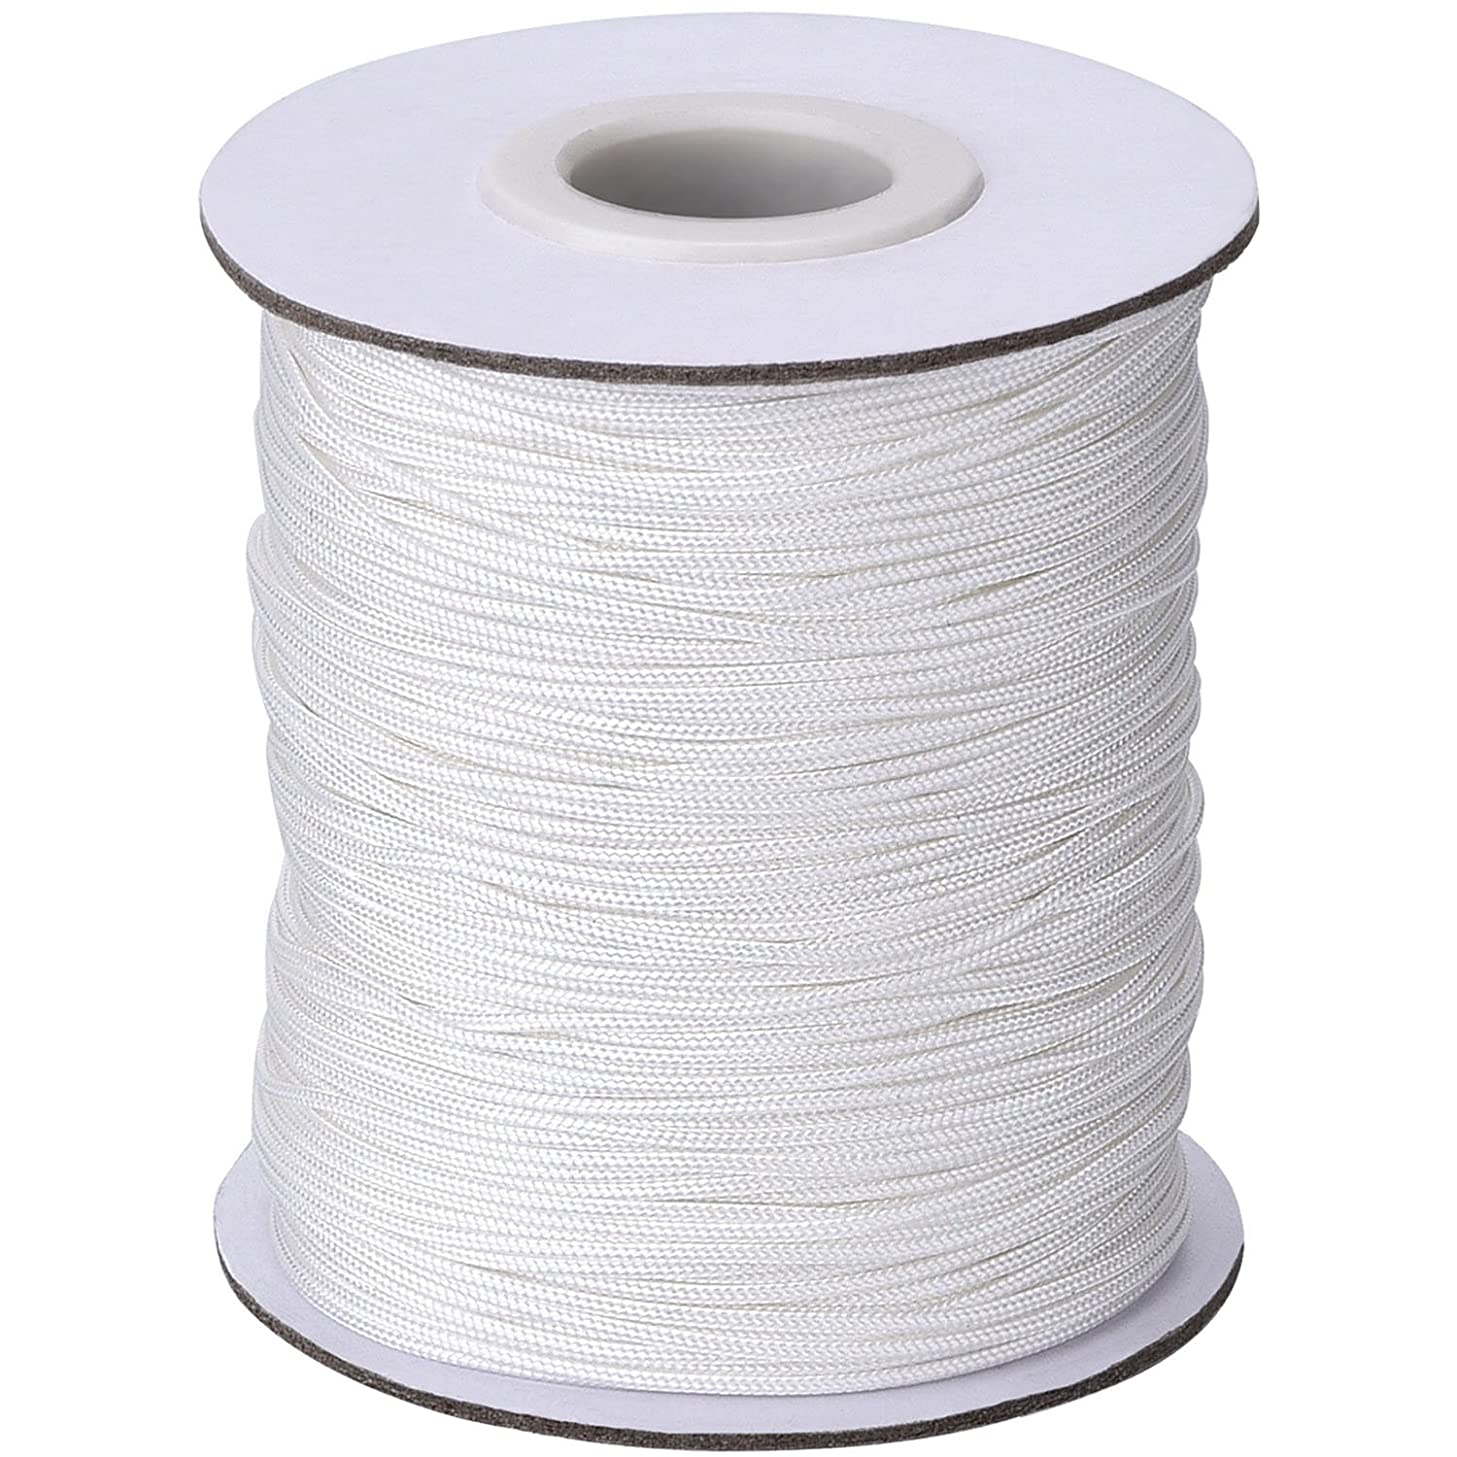 Outus 109 Yards/Roll White Braided Lift Shade Cord for Aluminum Blind Shade, Gardening Plant and Crafts (1.0 mm)